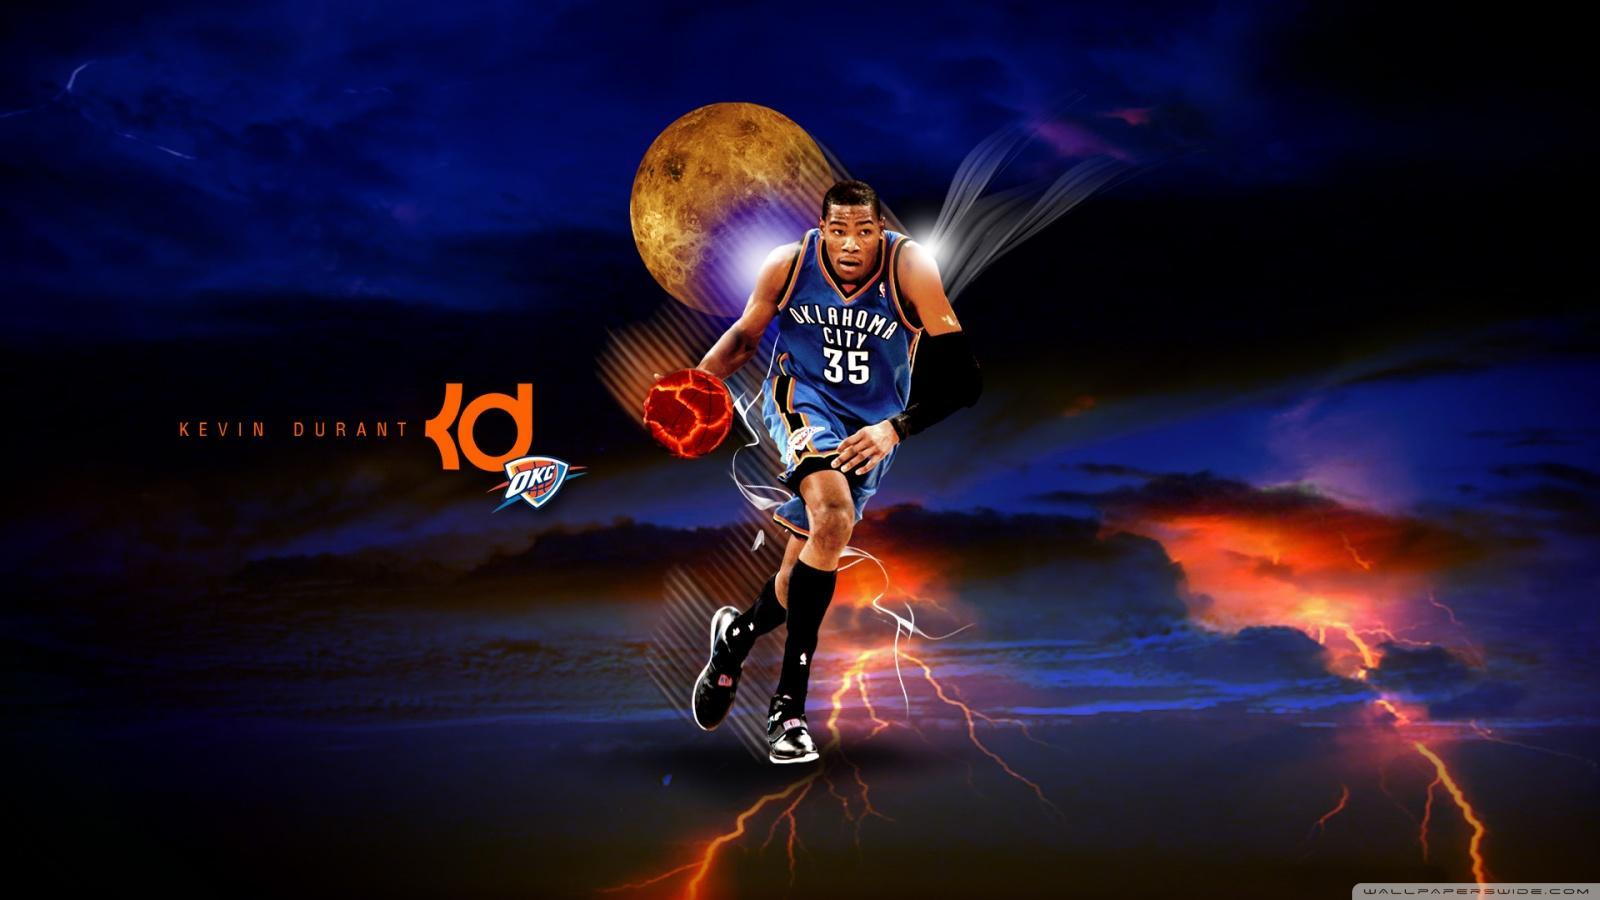 BasketBall Wallpapers 4K for Android   APK Download 1600x900